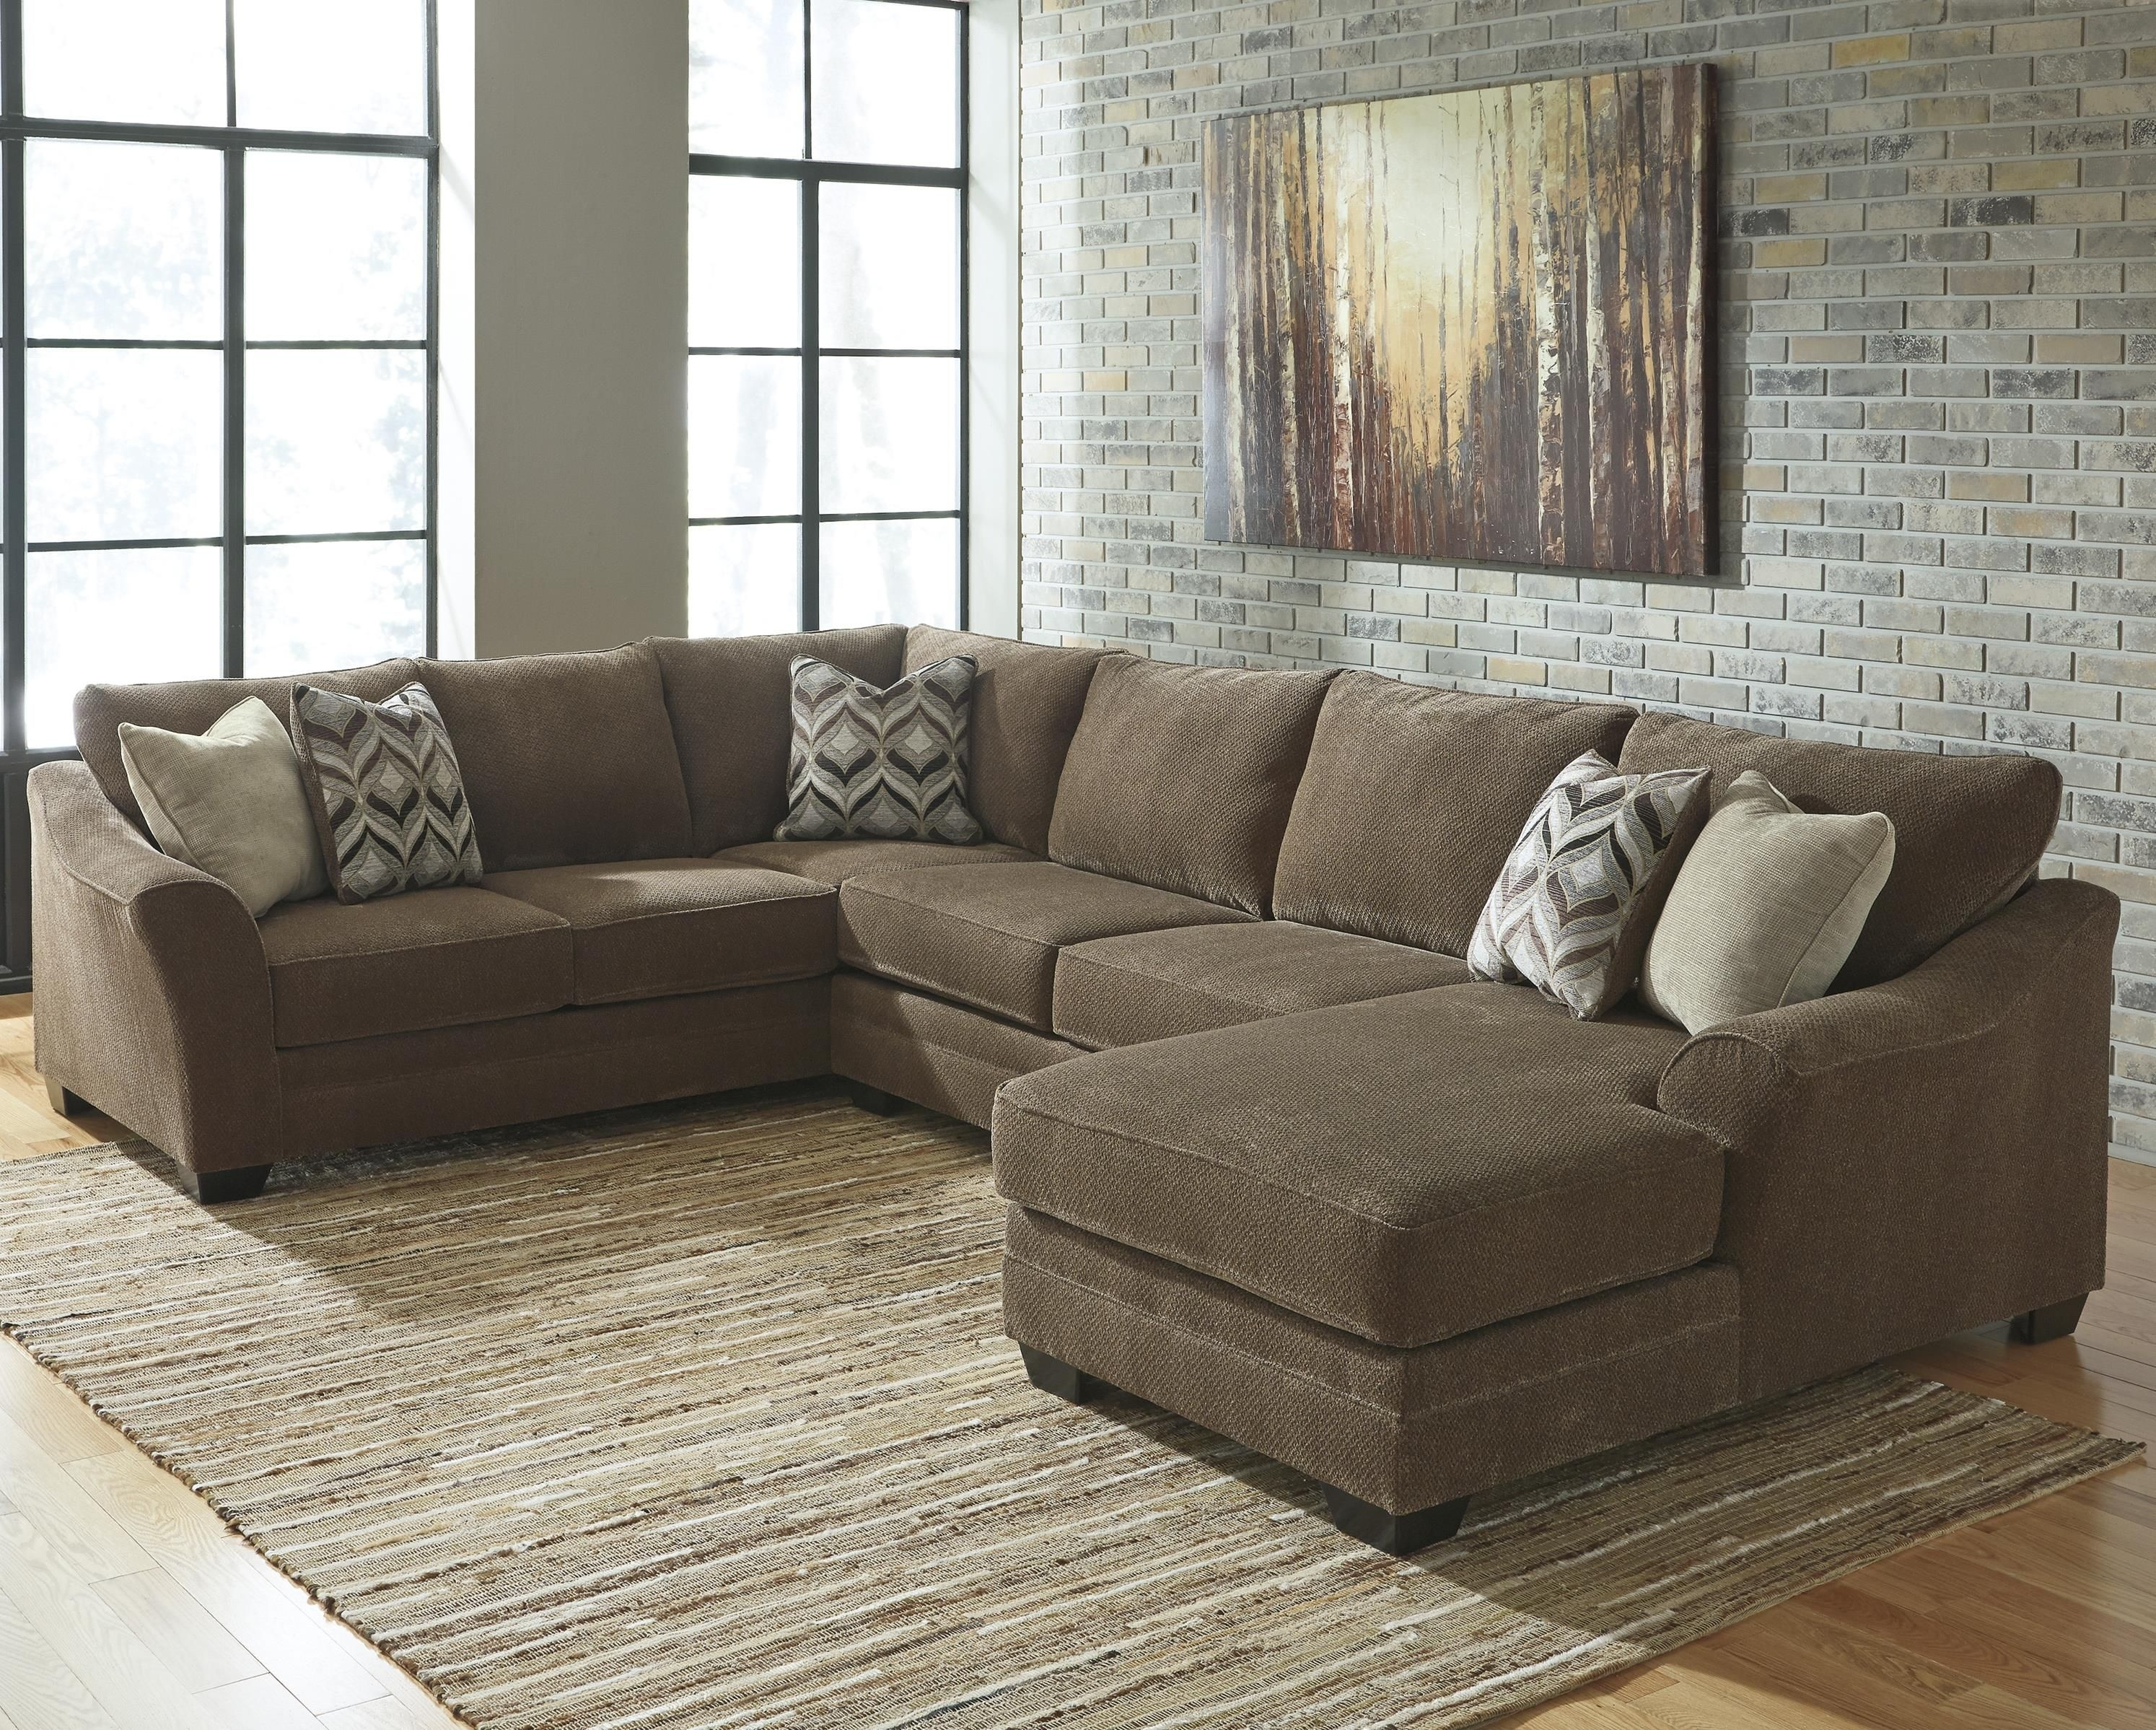 Justyna Contemporary 3 Piece Sectional With Right Chaise With Royal Furniture Sectional Sofas (Image 9 of 10)